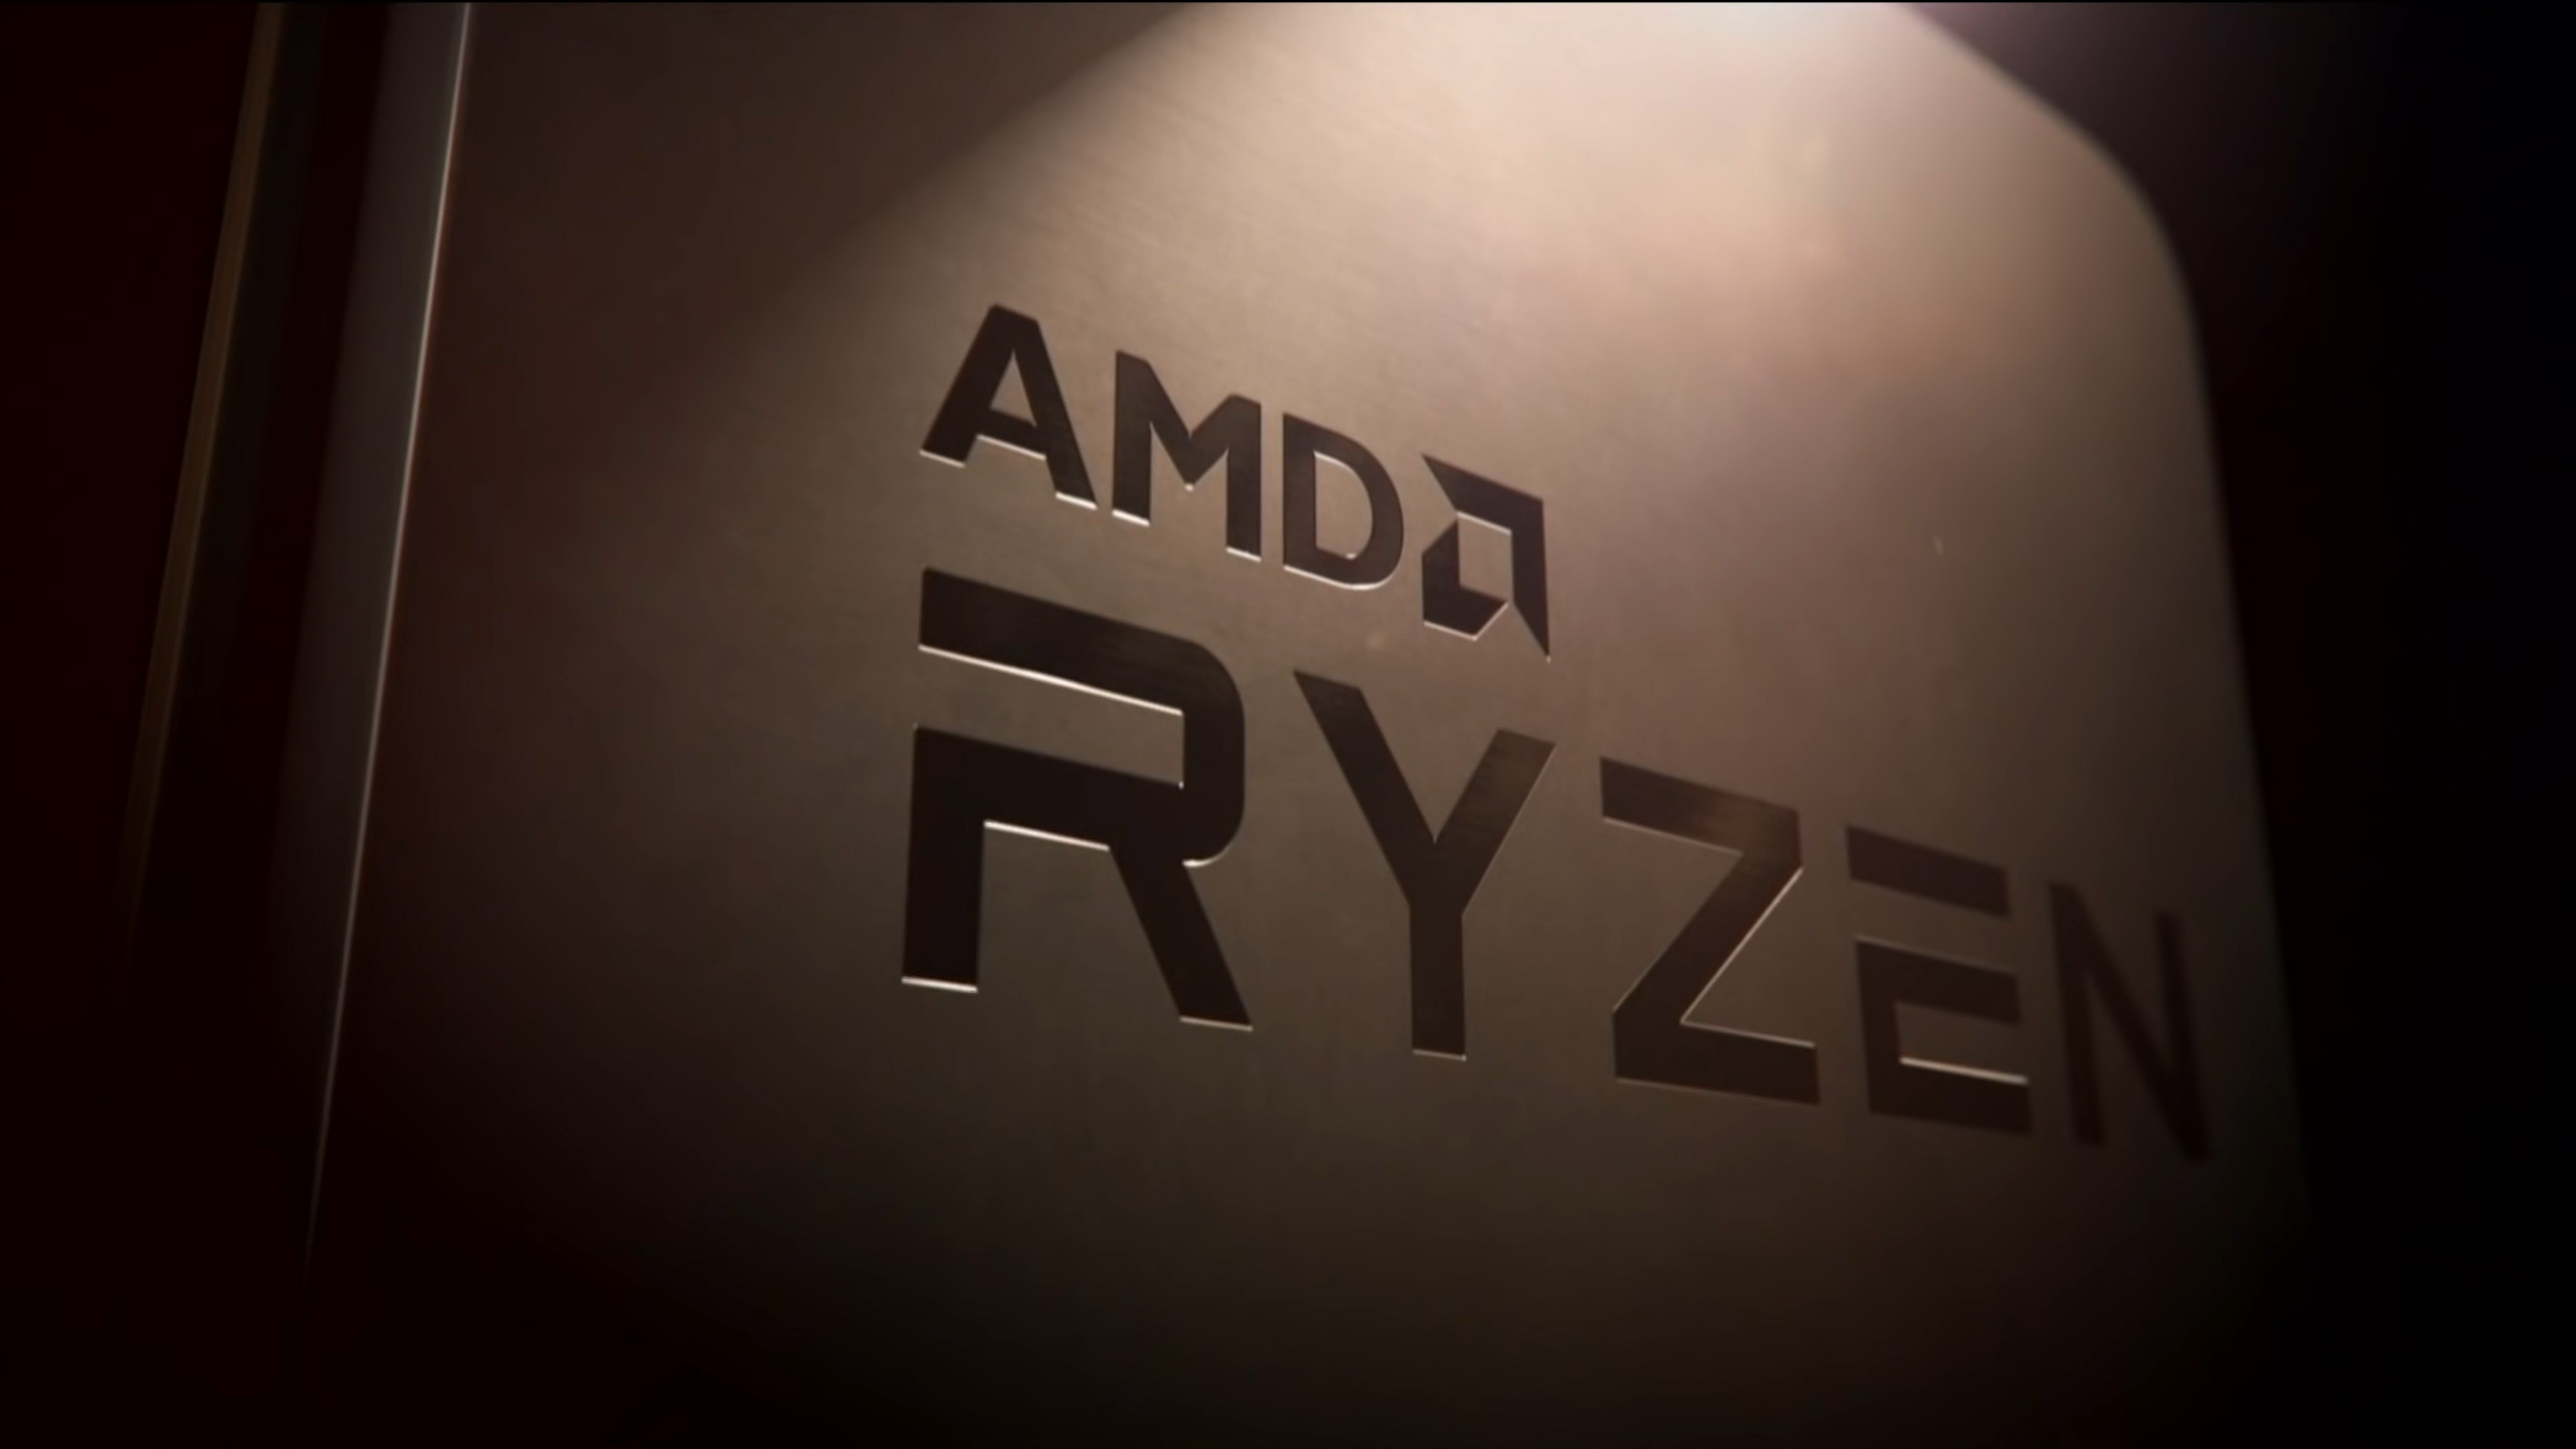 Ryzen 7 3700X Review: Faster For Gaming Than Core i7